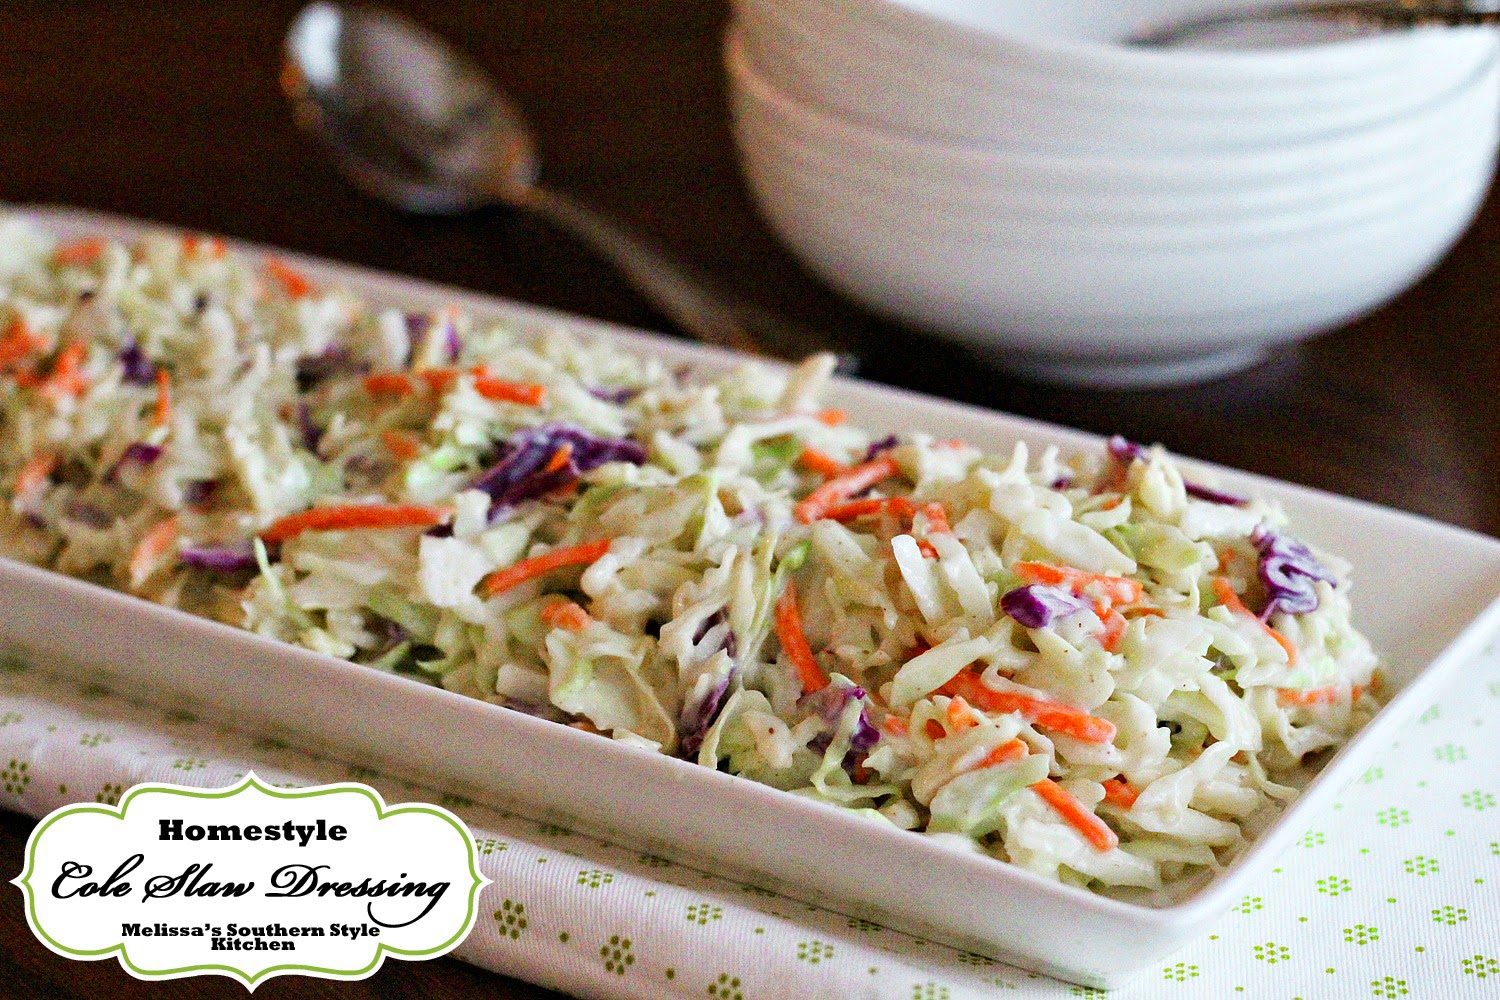 Melissa's Southern Style Kitchen: Homestyle Cole Slaw Dressing